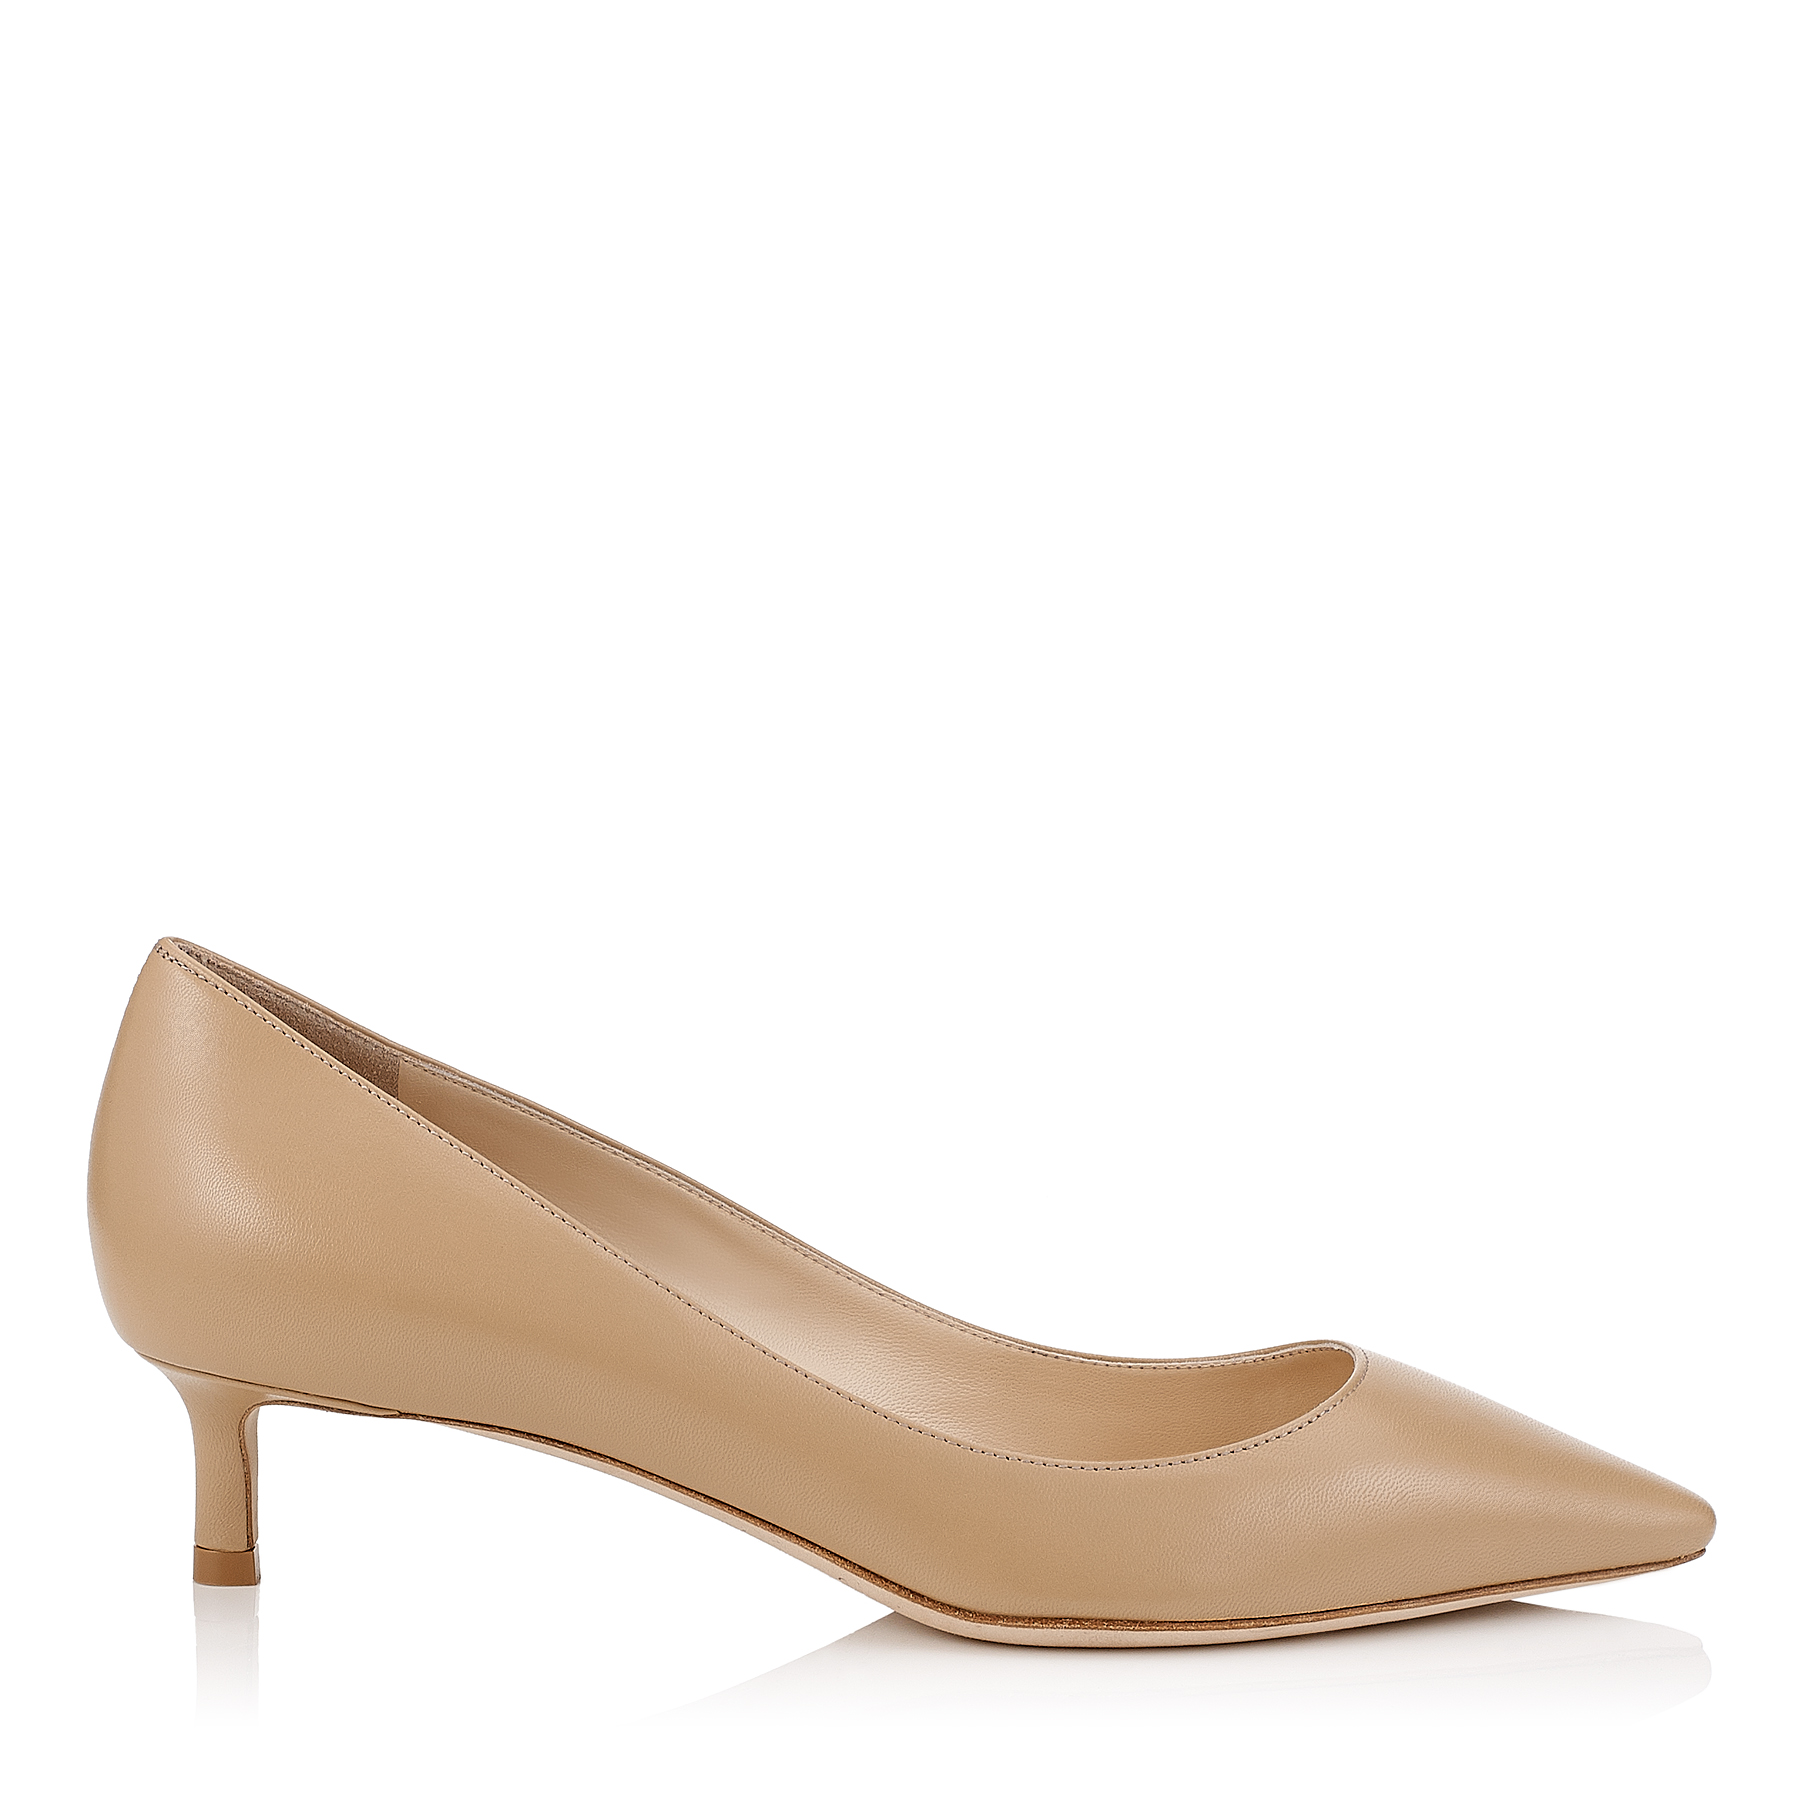 ROMY 40 Nude Kid Leather Pointy Toe Pumps by Jimmy Choo